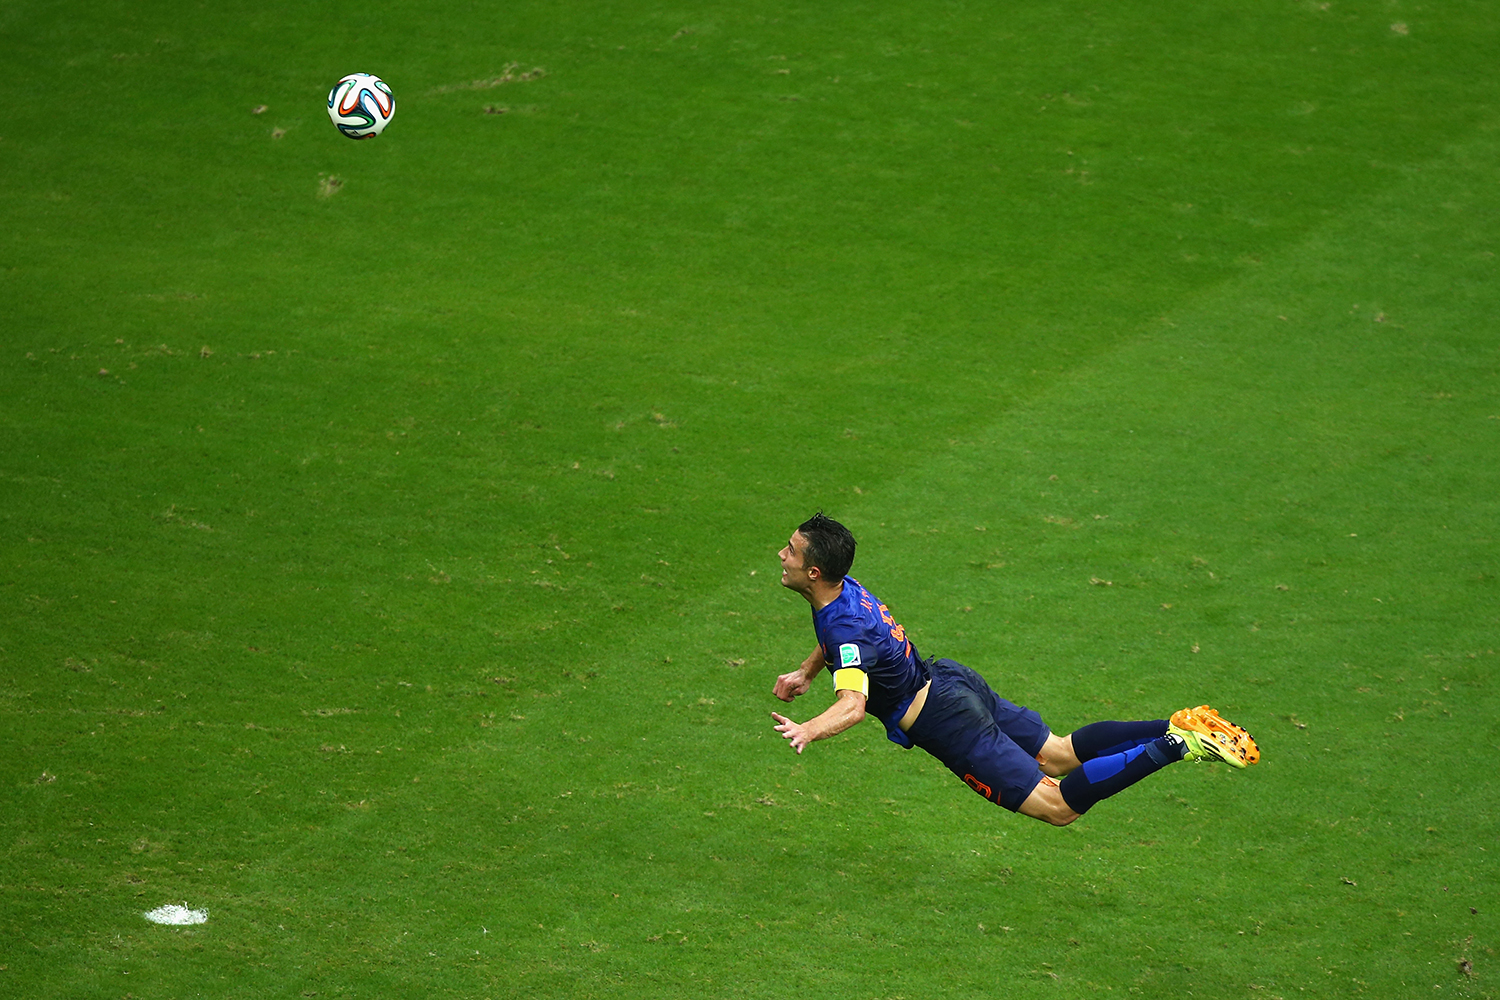 June 13, 2014. Robin van Persie of the Netherlands scores the teams first goal with a diving header in the first half during the 2014 FIFA World Cup Brazil Group B match between Spain and Netherlands at Arena Fonte Nova in Salvador, Brazil.